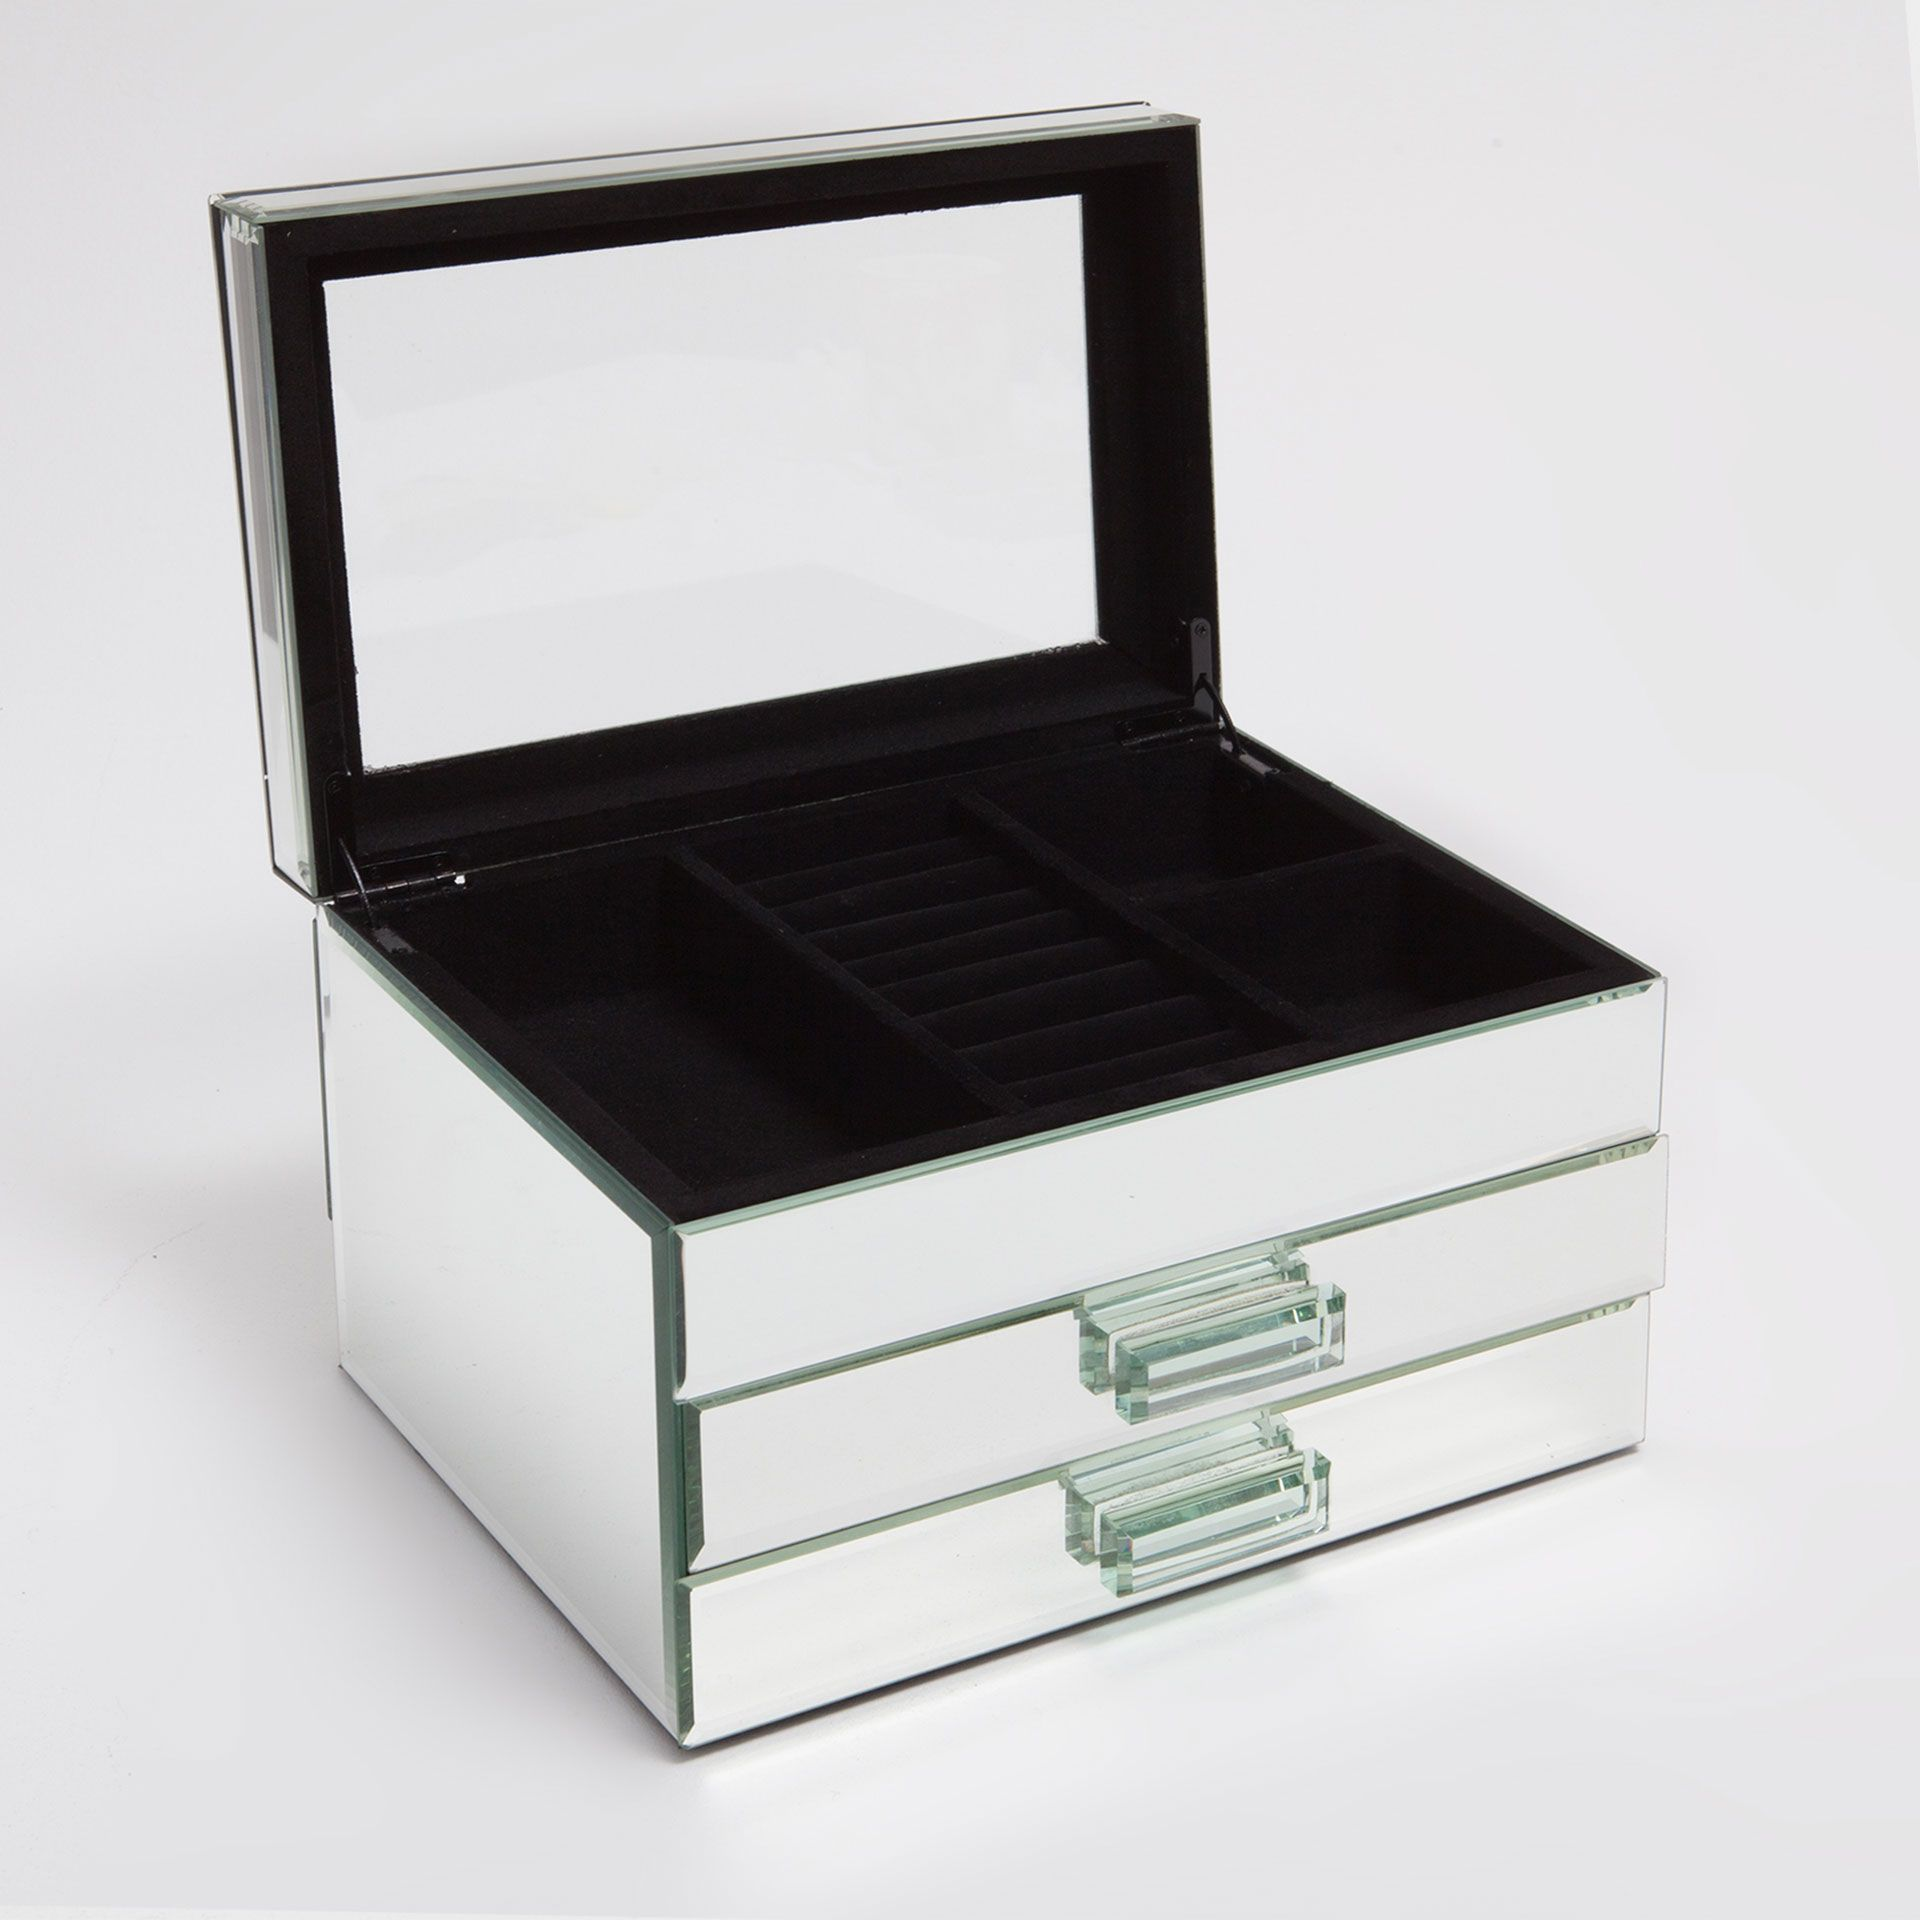 Zara home to open in toronto - Mirror Box With Drawers Boxes Decoration Zara Home Sverige Sweden